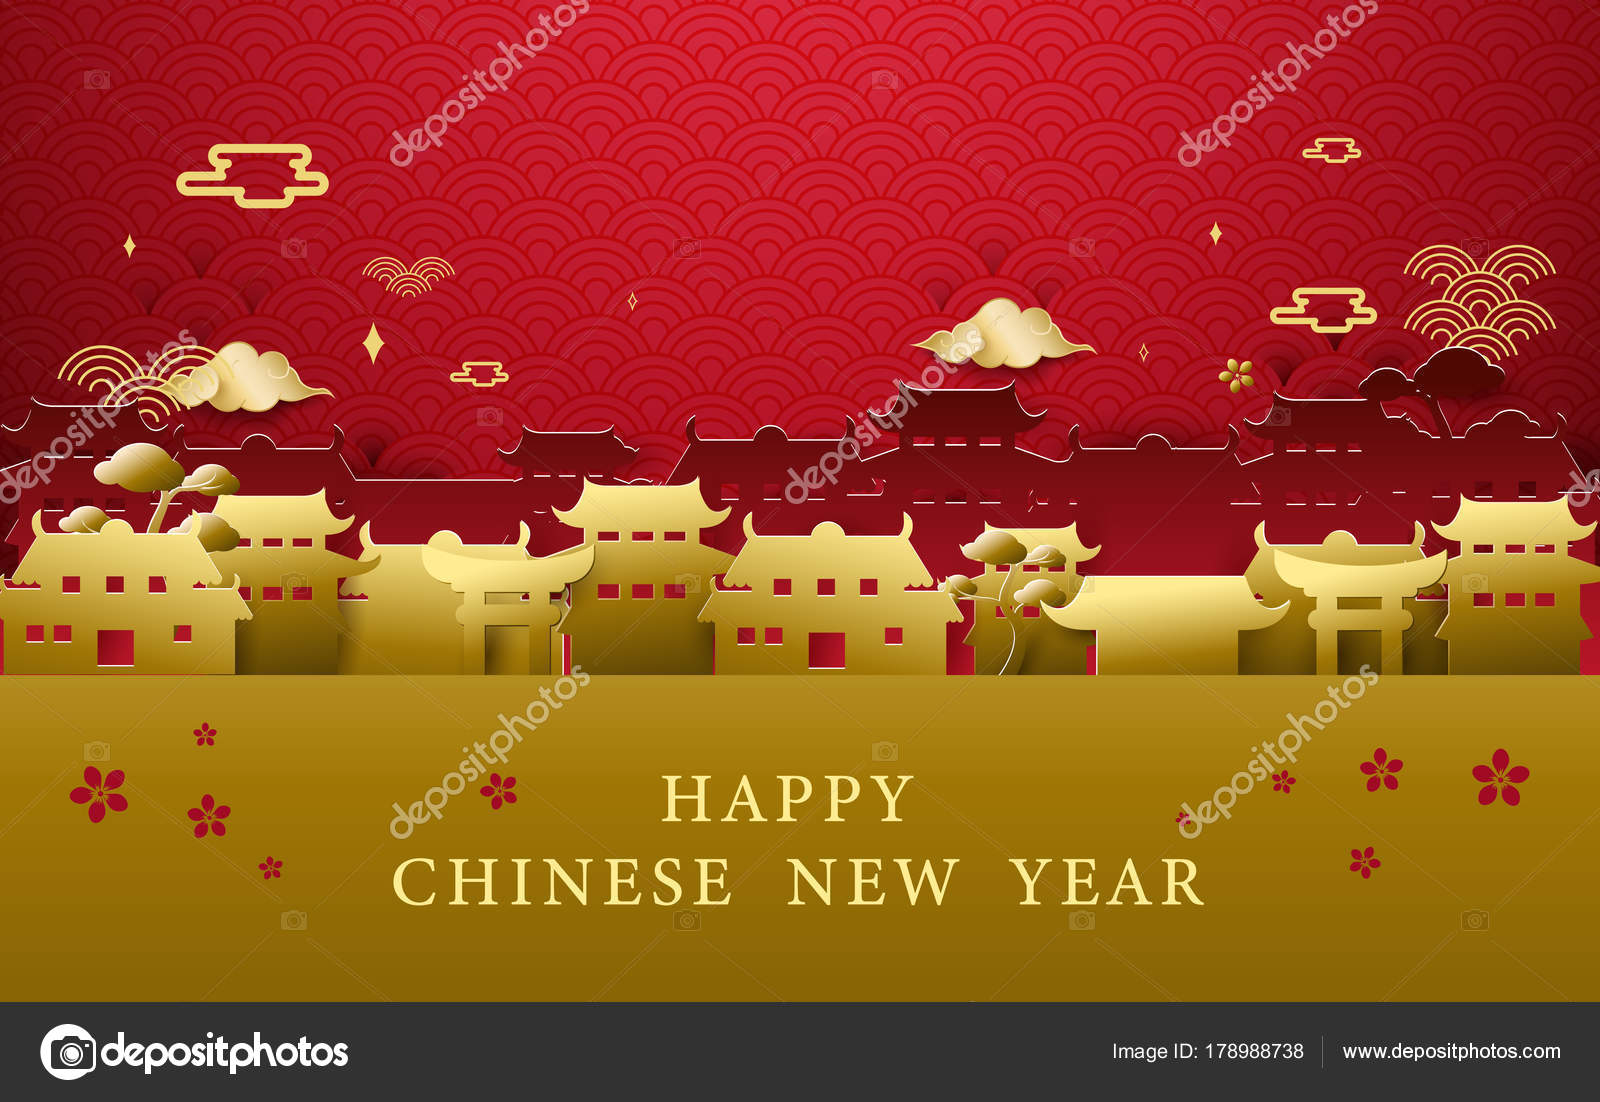 Happy Chinese New Year Greetings Gold And Red Chinese Village